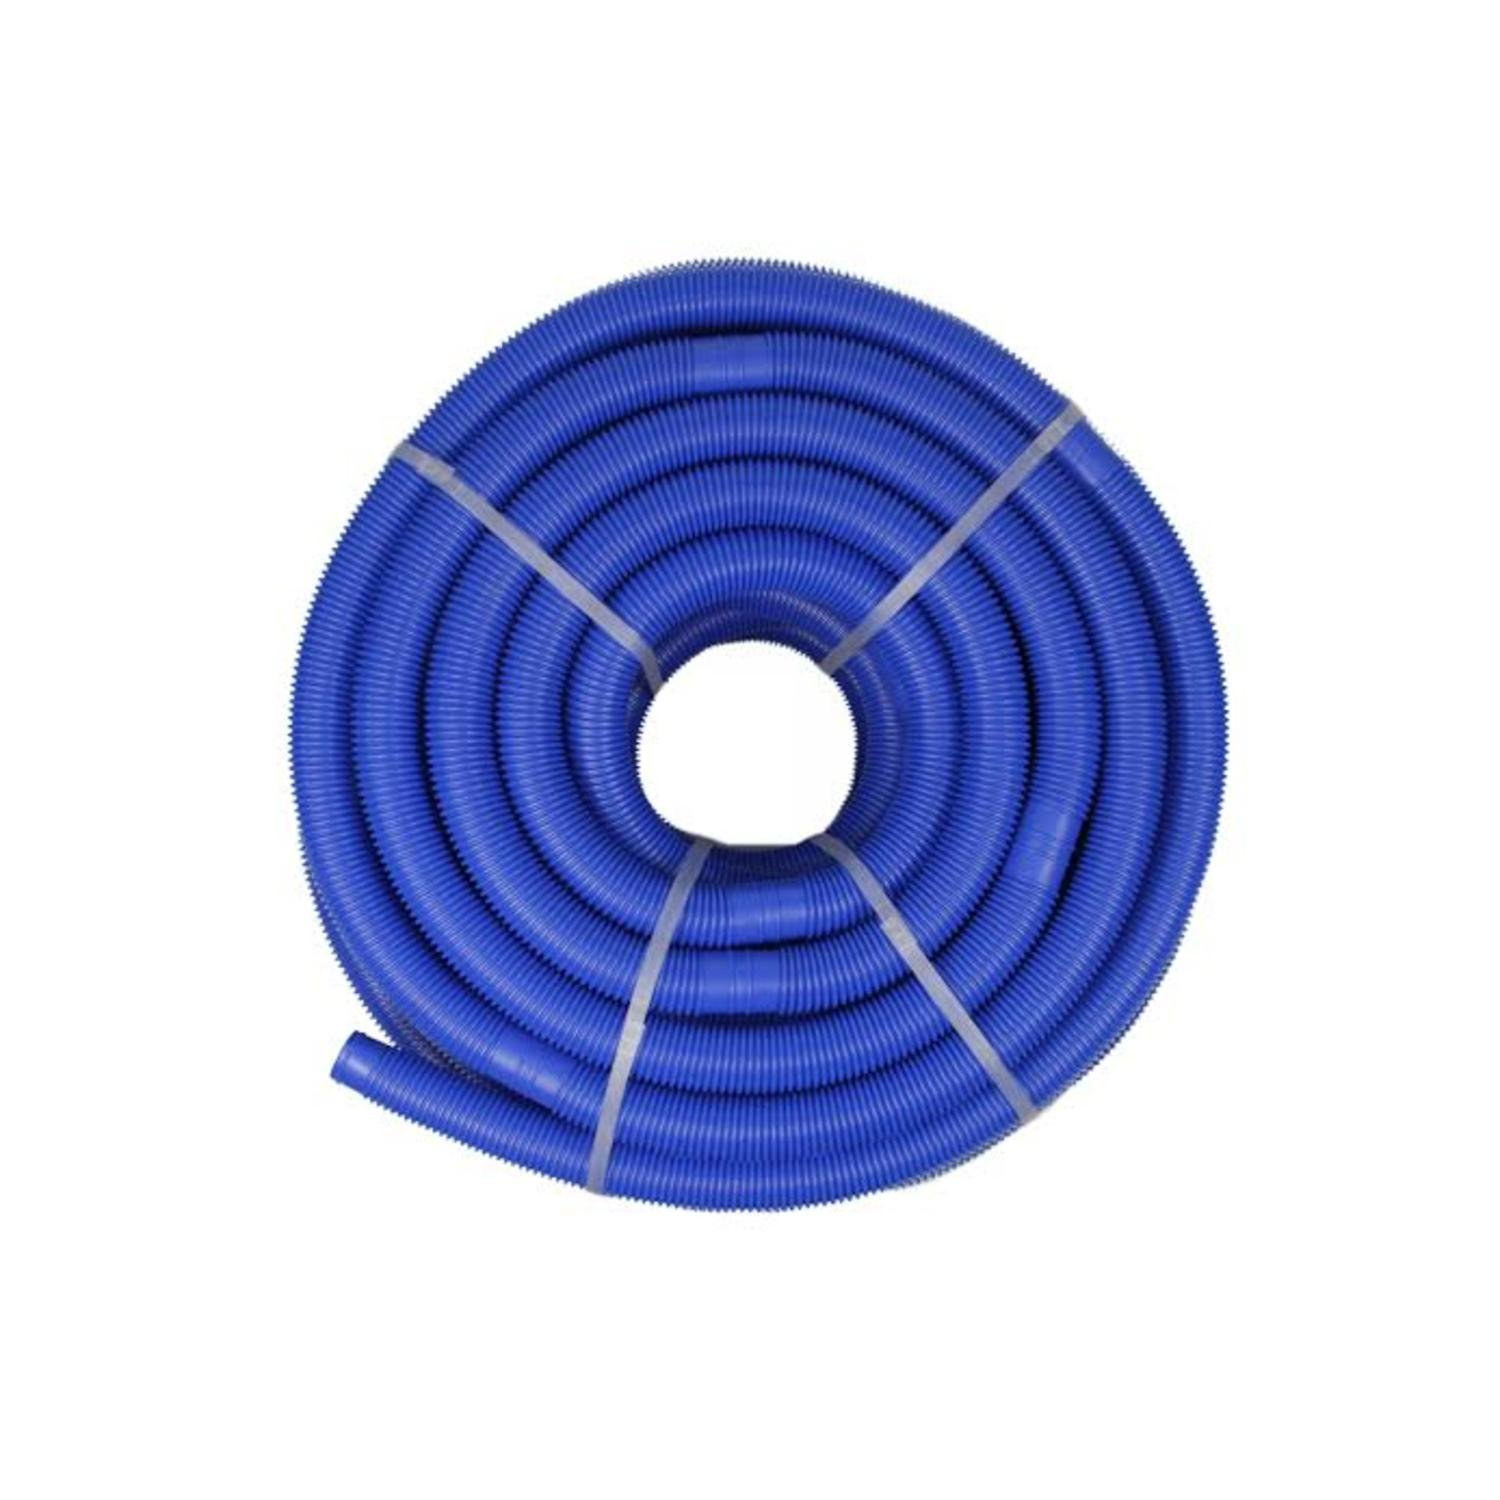 Blow-Molded PE In-Ground Swimming Pool Cuttable Vacuum Hose Size: 1771'' H x 1.5'' W x 1.5'' D